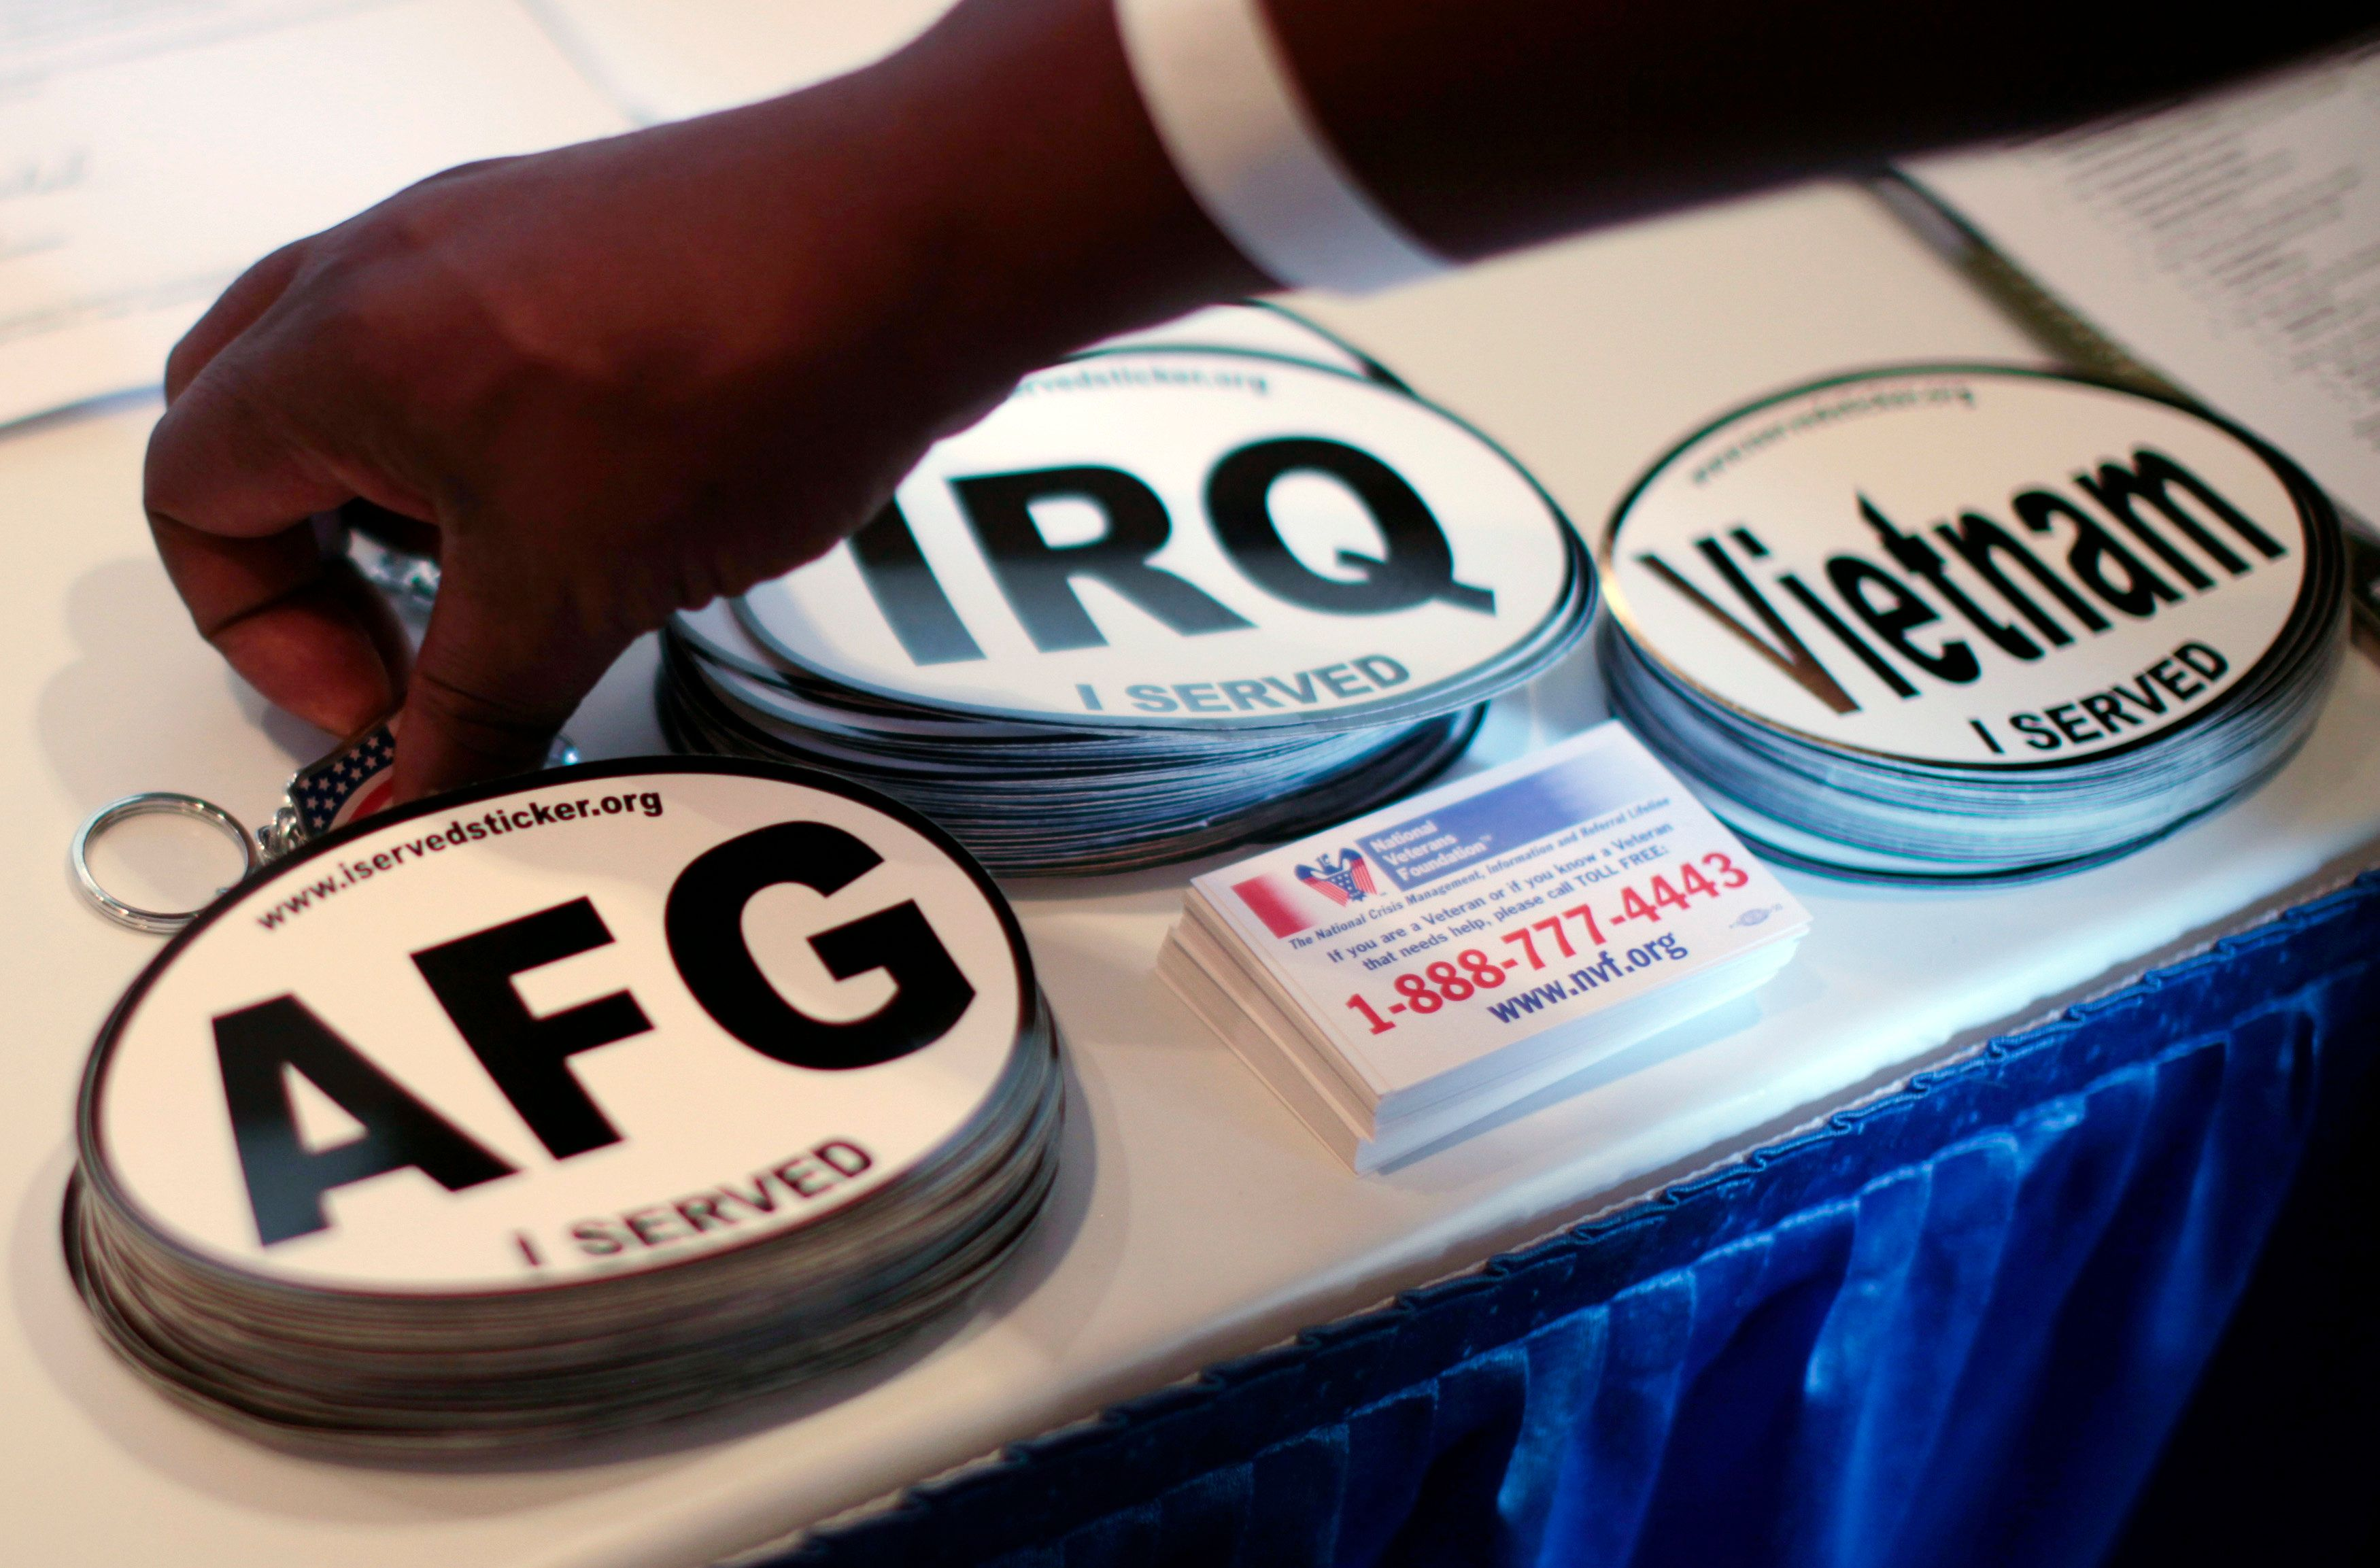 Car stickers commemorating U.S. military service in Vietnam, Afghanistan and Iraq are seen on a recruiter's table at a veterans job fair in Los Angeles, California November 10, 2010. REUTERS/Lucy Nicholson (UNITED STATES - Tags: EMPLOYMENT BUSINESS)